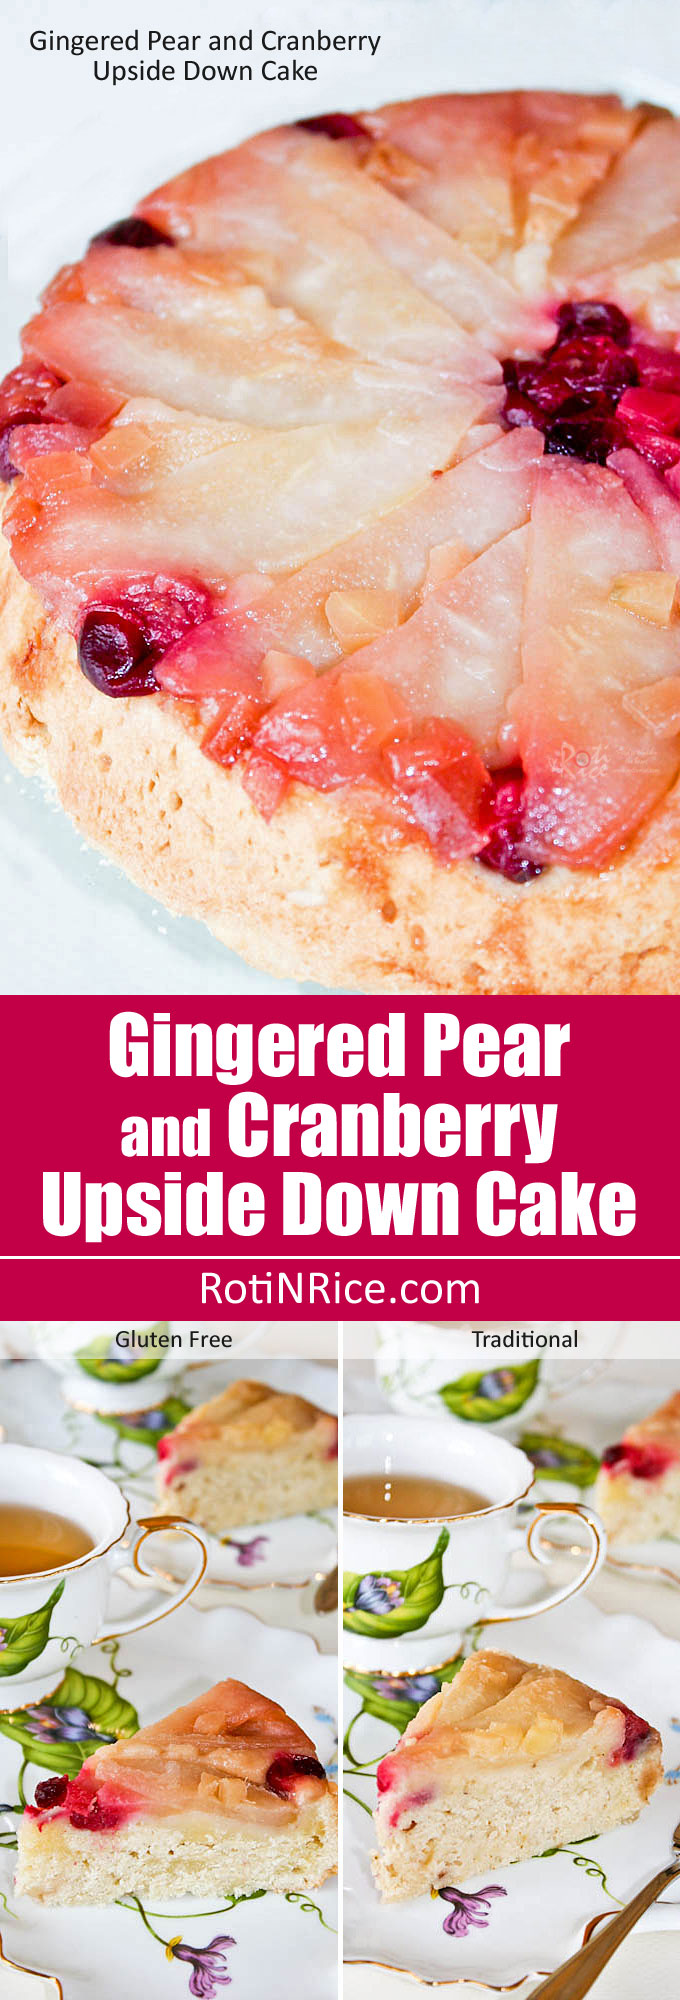 Warmly spiced Gingered Pear and Cranberry Upside Down Cake with gluten free and traditional flour options. Deliciously moist, festive, and perfect for all occasions. | RotiNRice.com